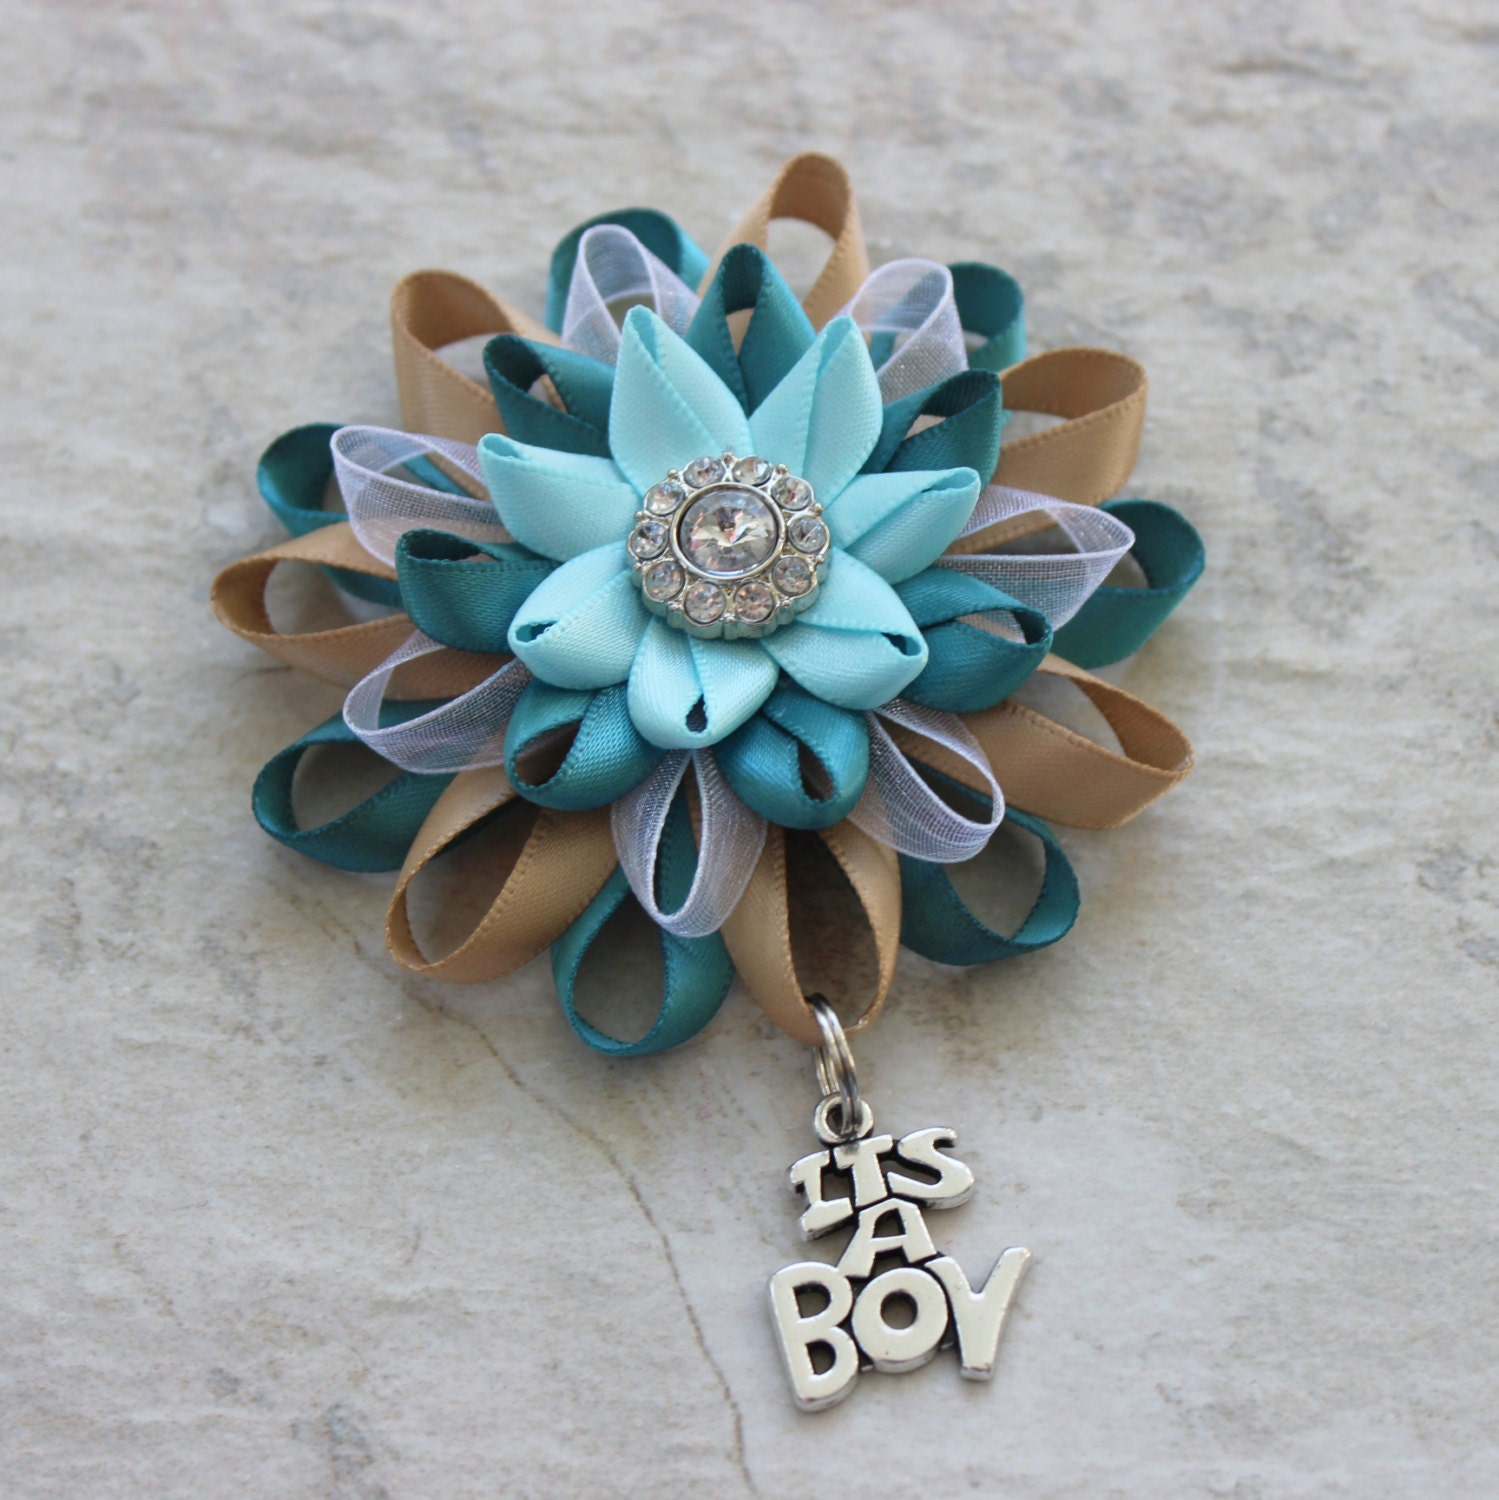 Turquoise Baby Shower Decorations Its A Boy Corsage Its A Boy Pin Baby Boy Shower Corsage Baby